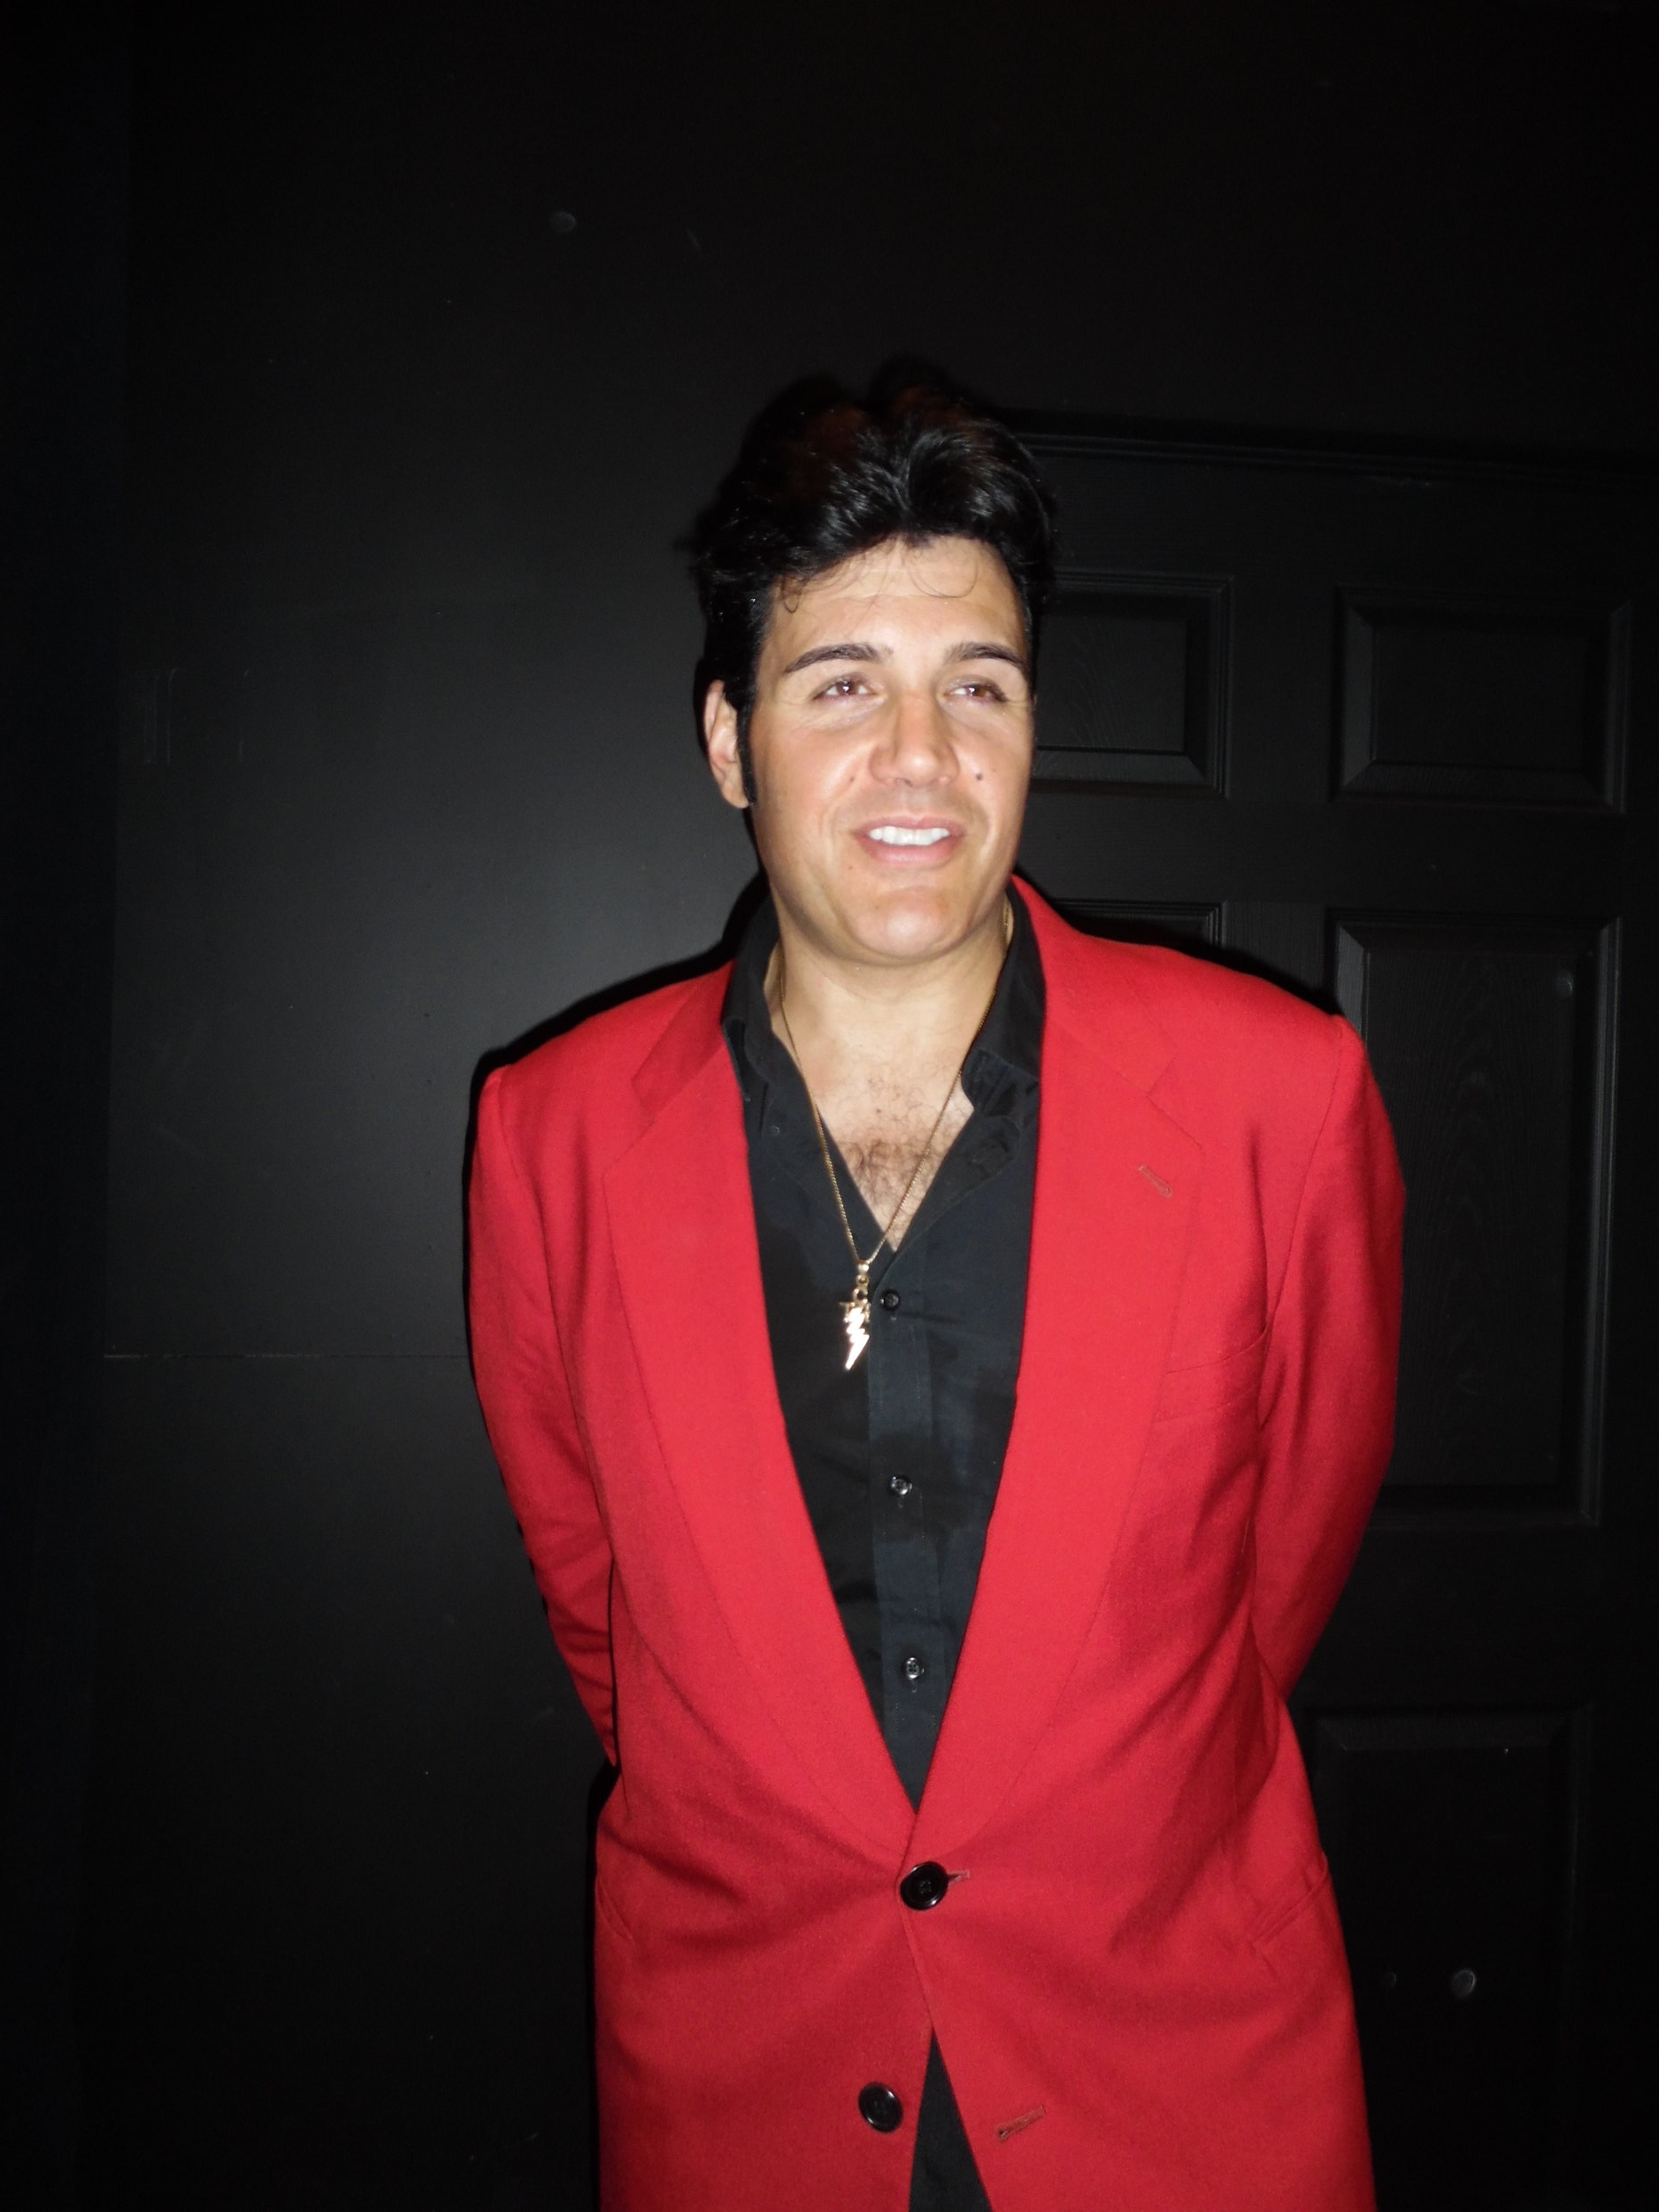 ETA  Gino Monopoli  takes time for a photo after his first set, Wednesday, January 17th, 2018.